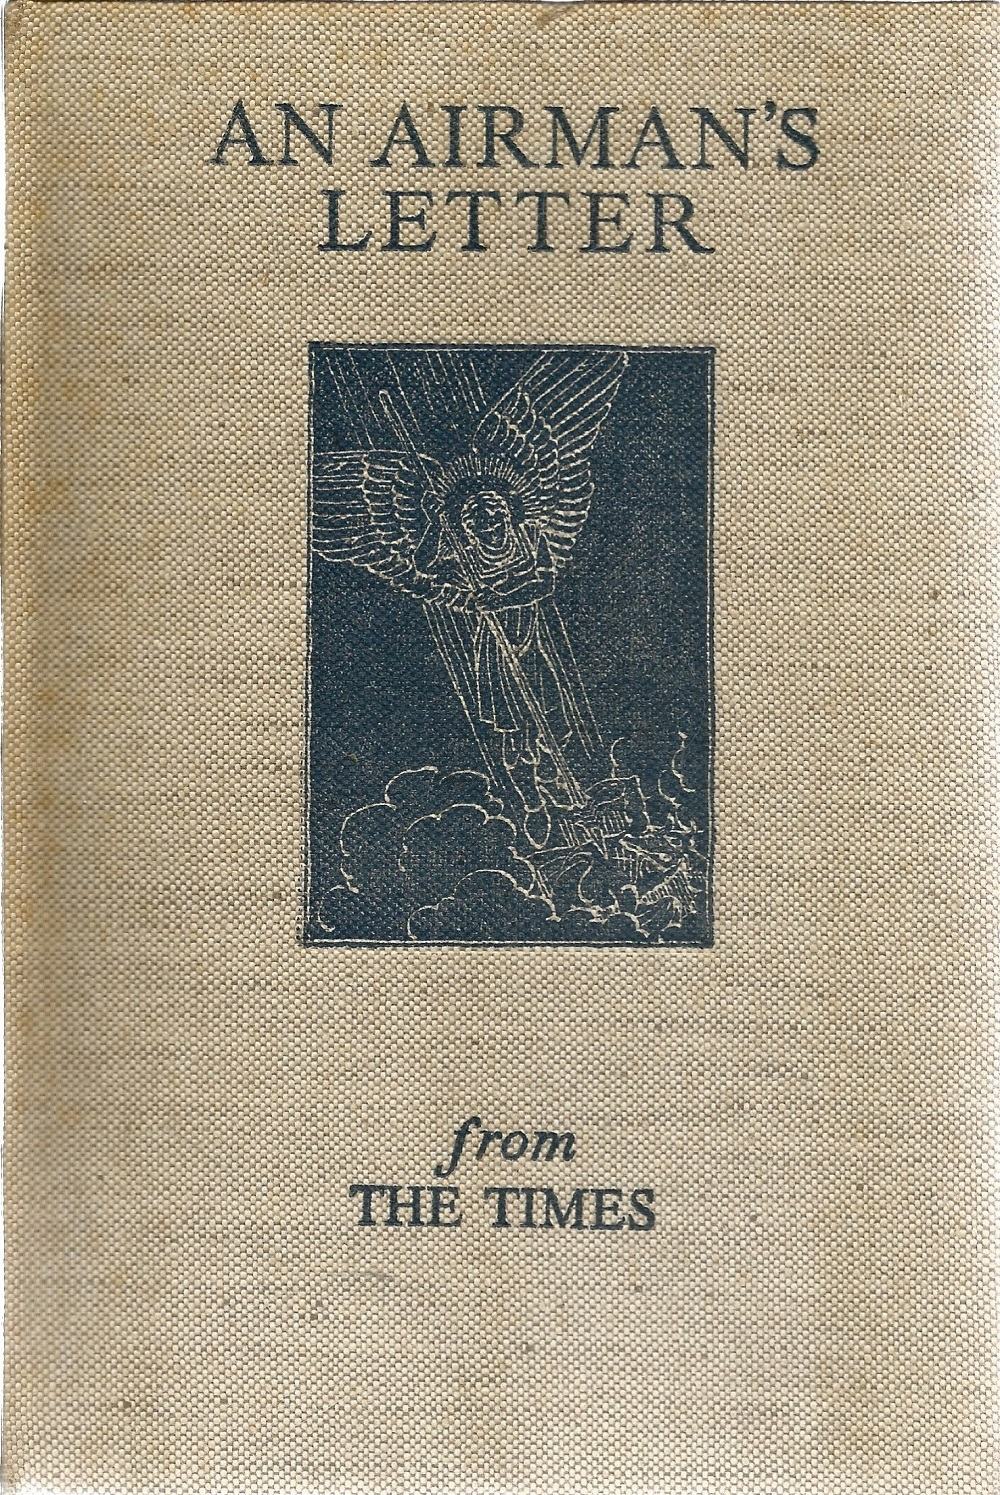 The Times. An Airman's Letter. A WW2 First Edition Hardback book, showing signs of age. Signed By - Image 3 of 3